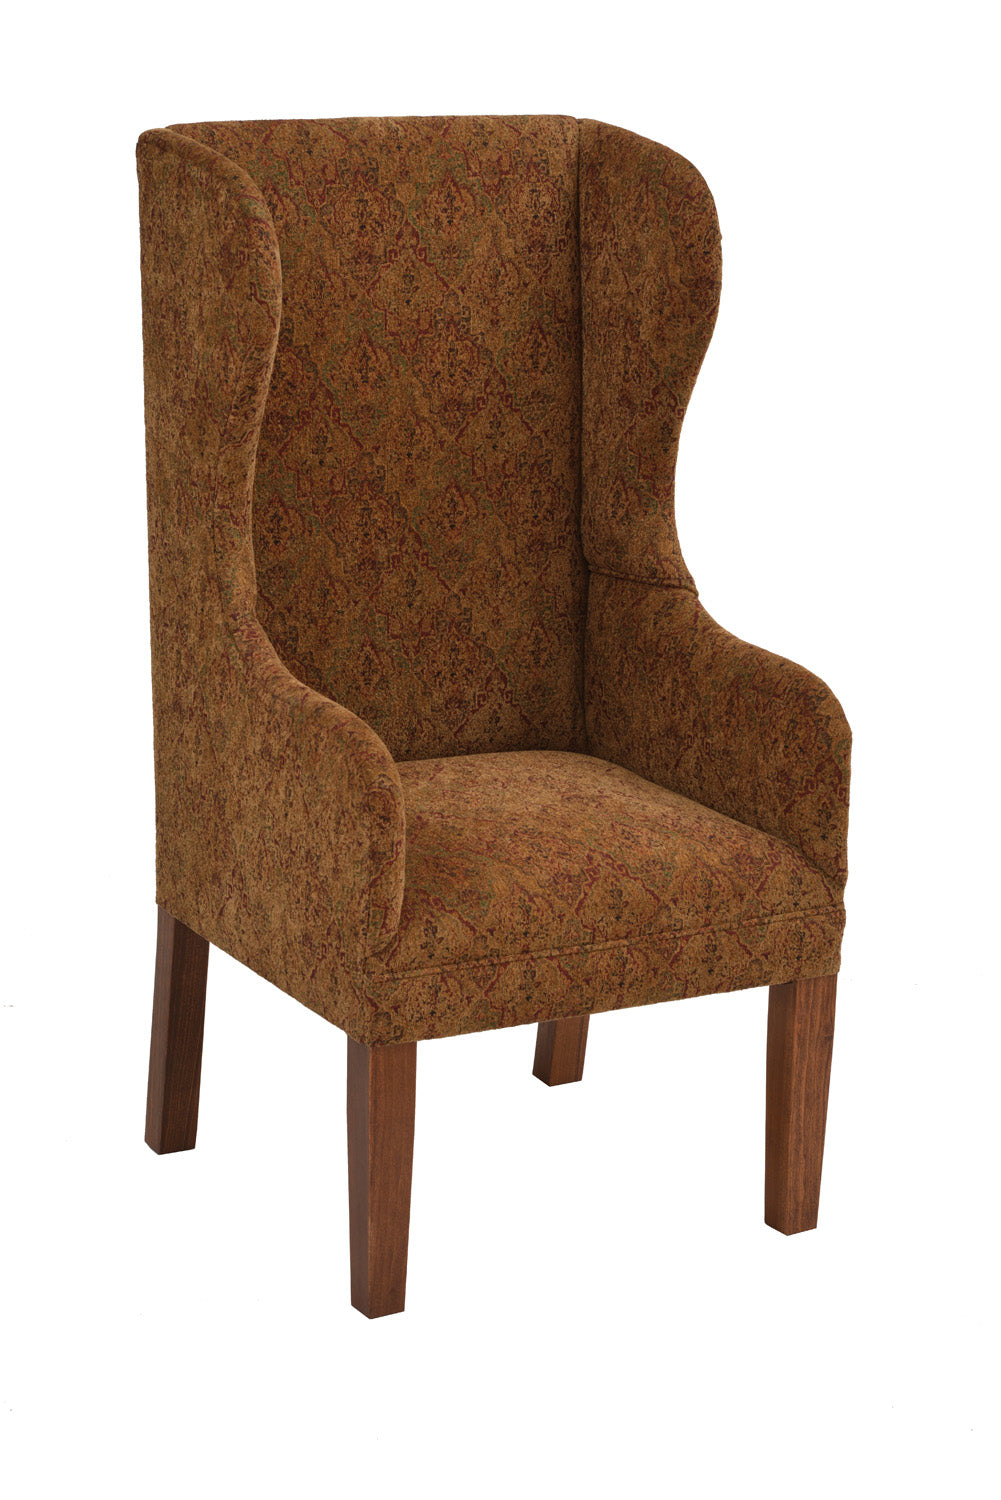 Guildford Companion Chair